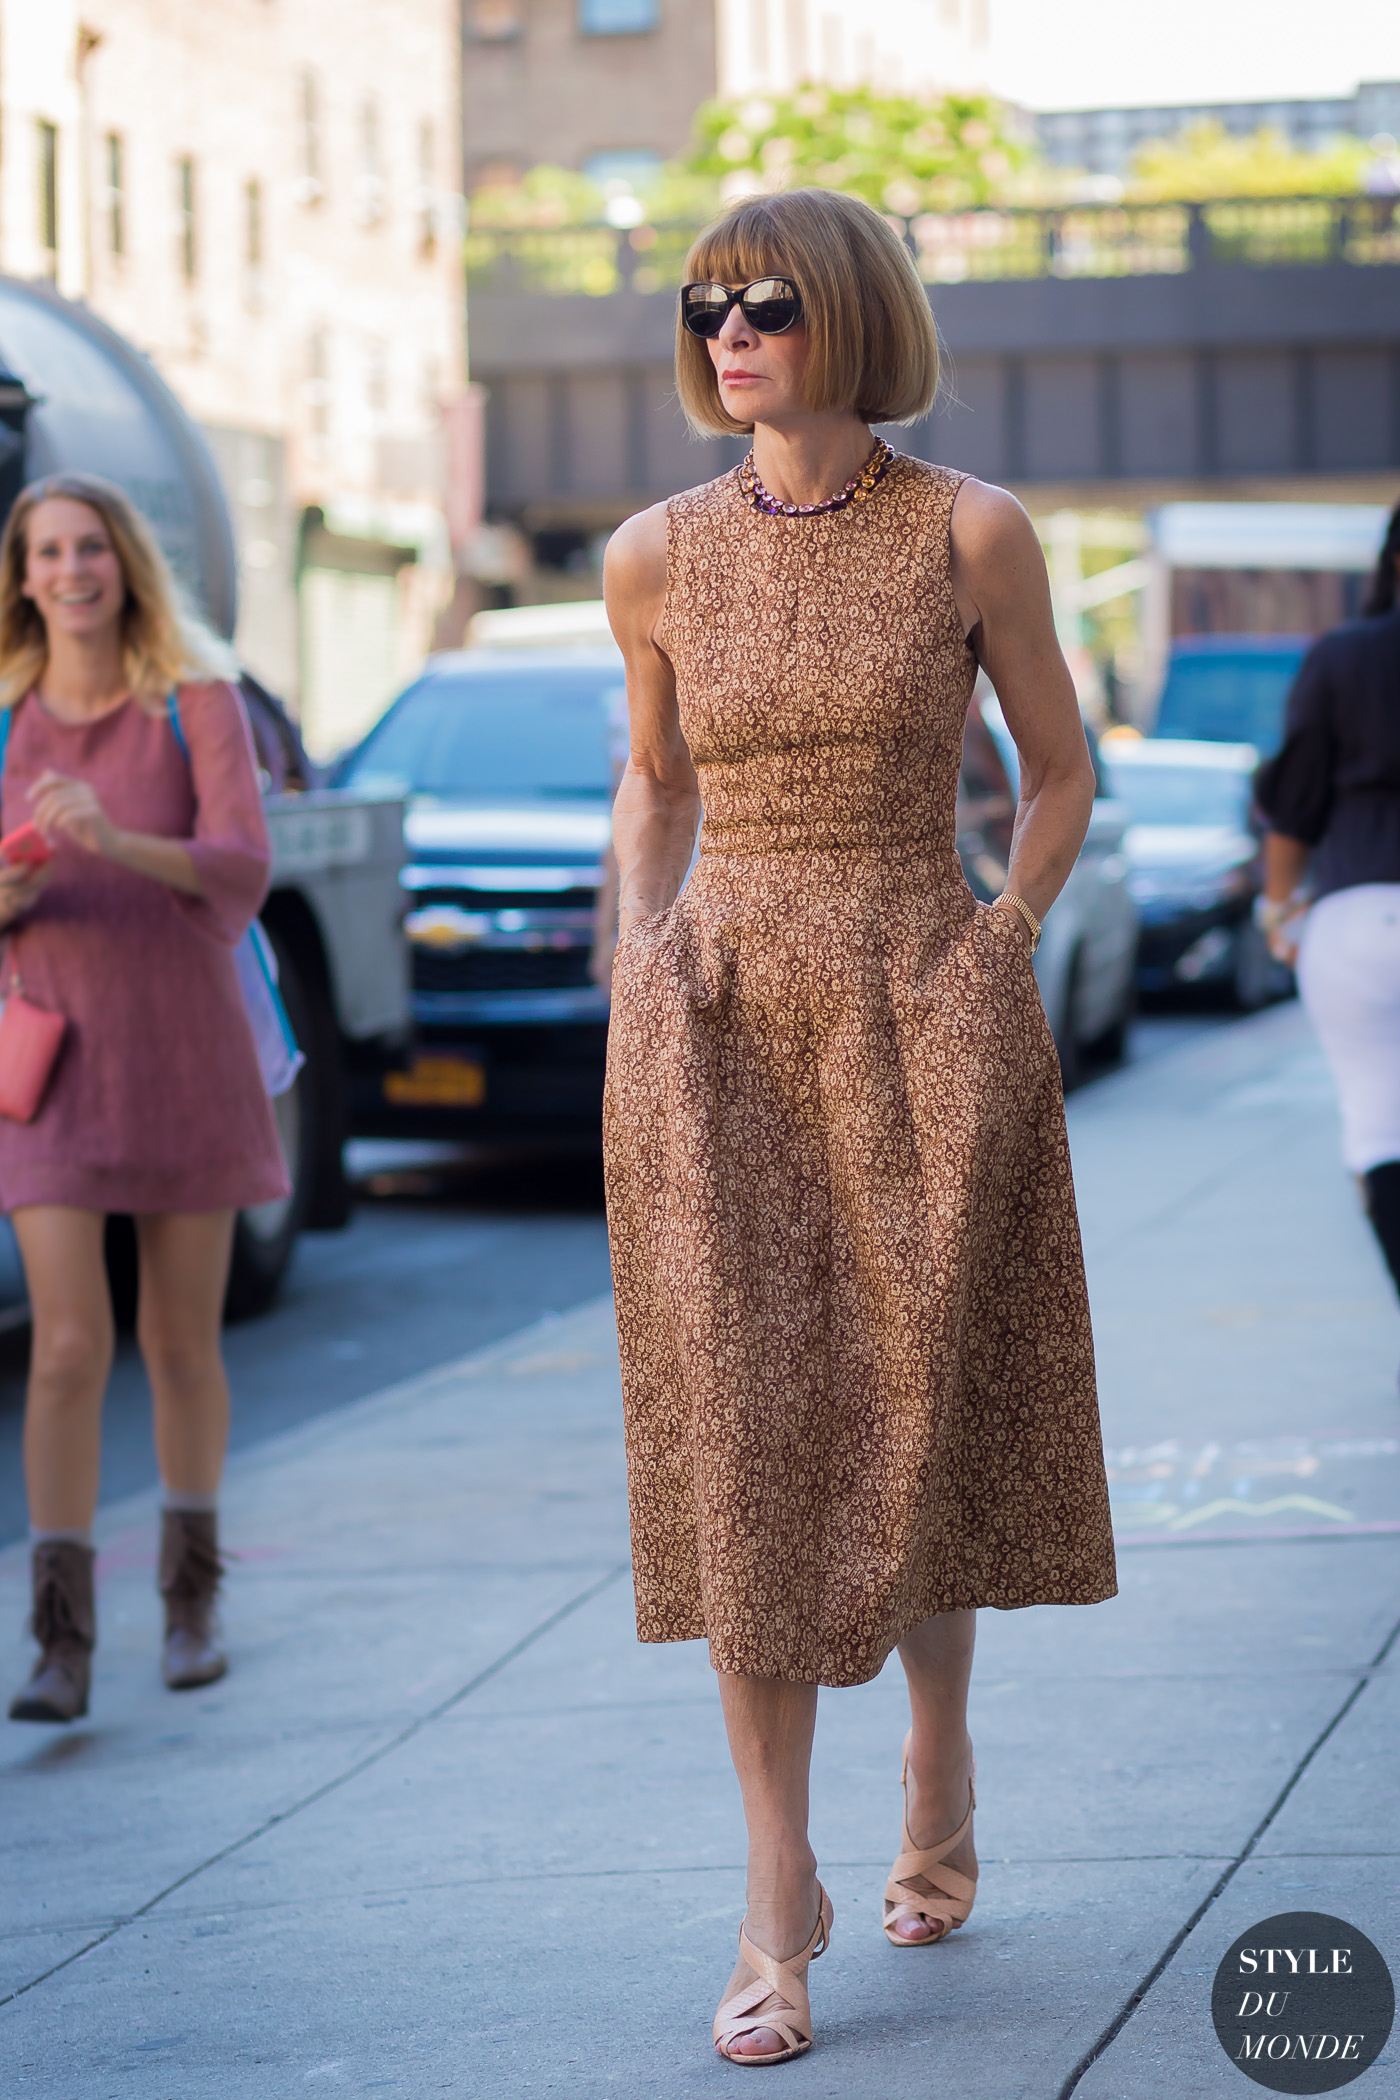 Anna Wintour Street Style Images Galleries With A Bite